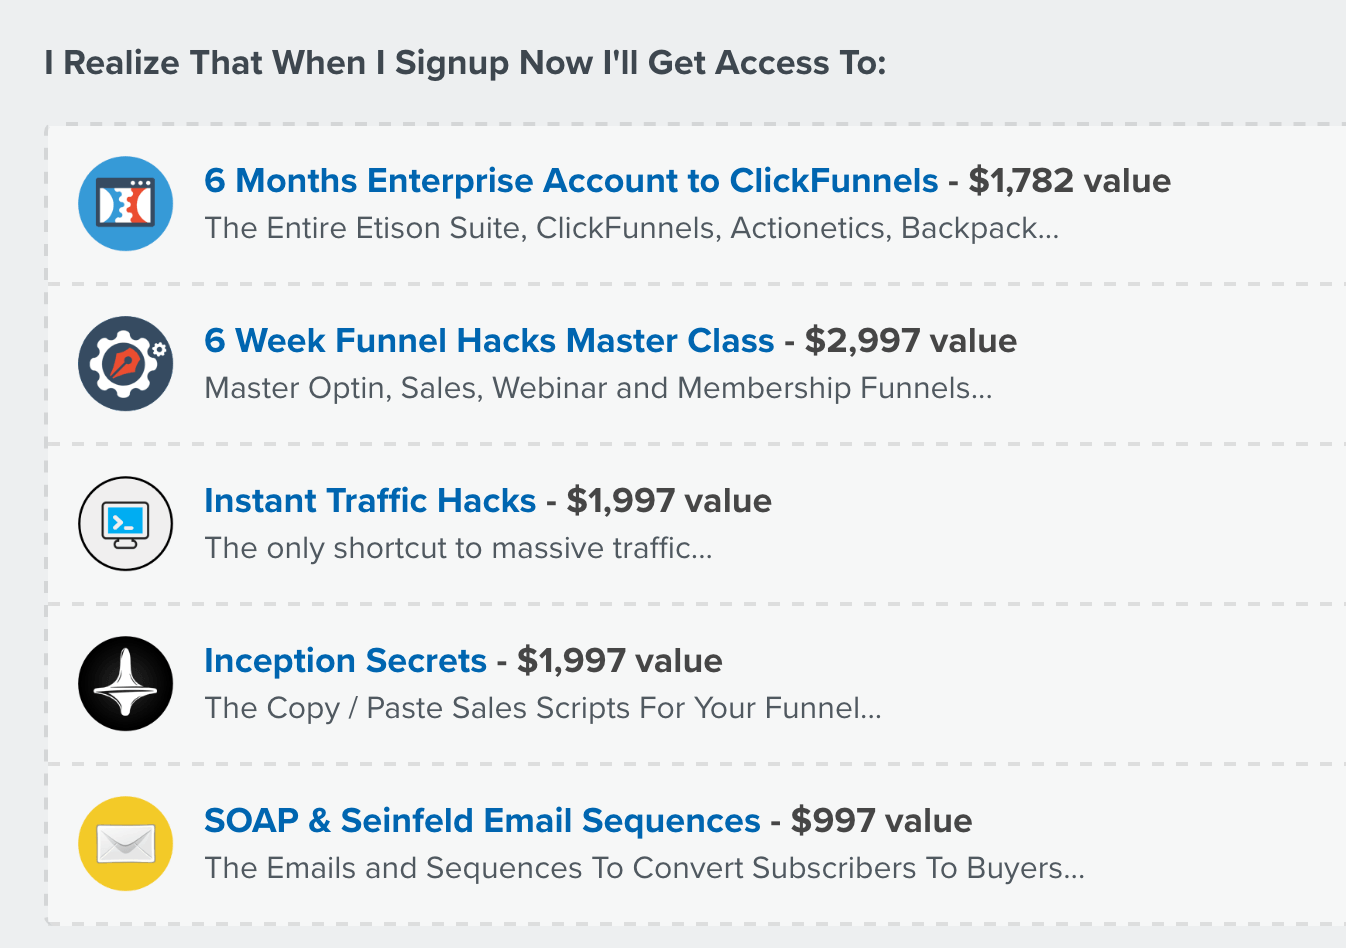 My Clickfunnels Account